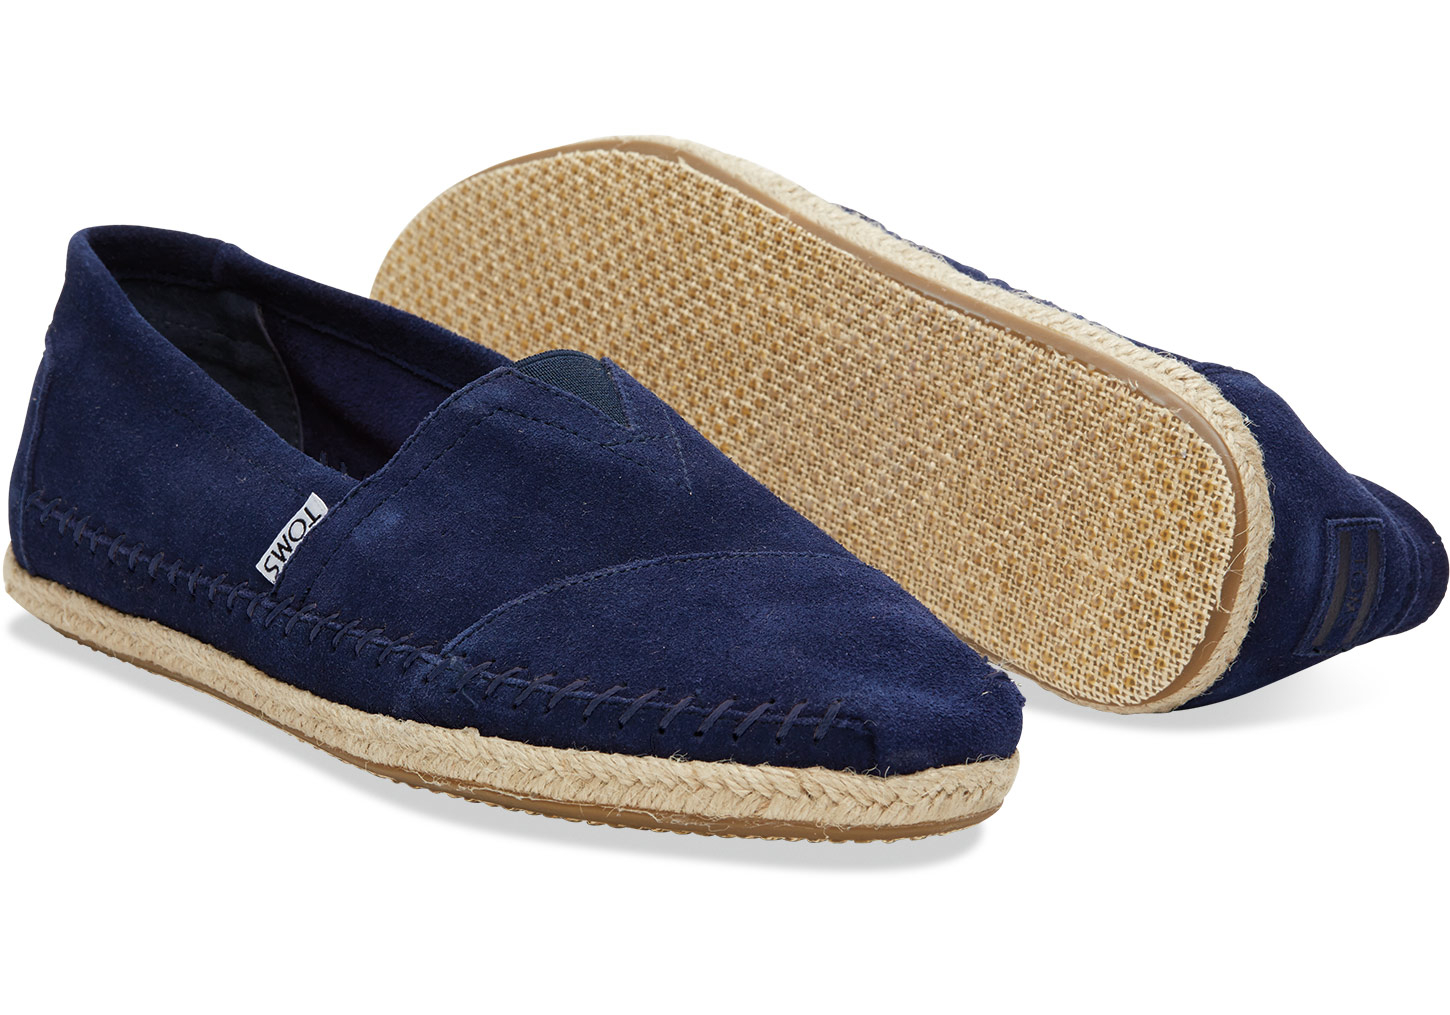 15c41a0be1d Lyst - TOMS Navy Suede Rope Sole Men s Classics in Blue for Men